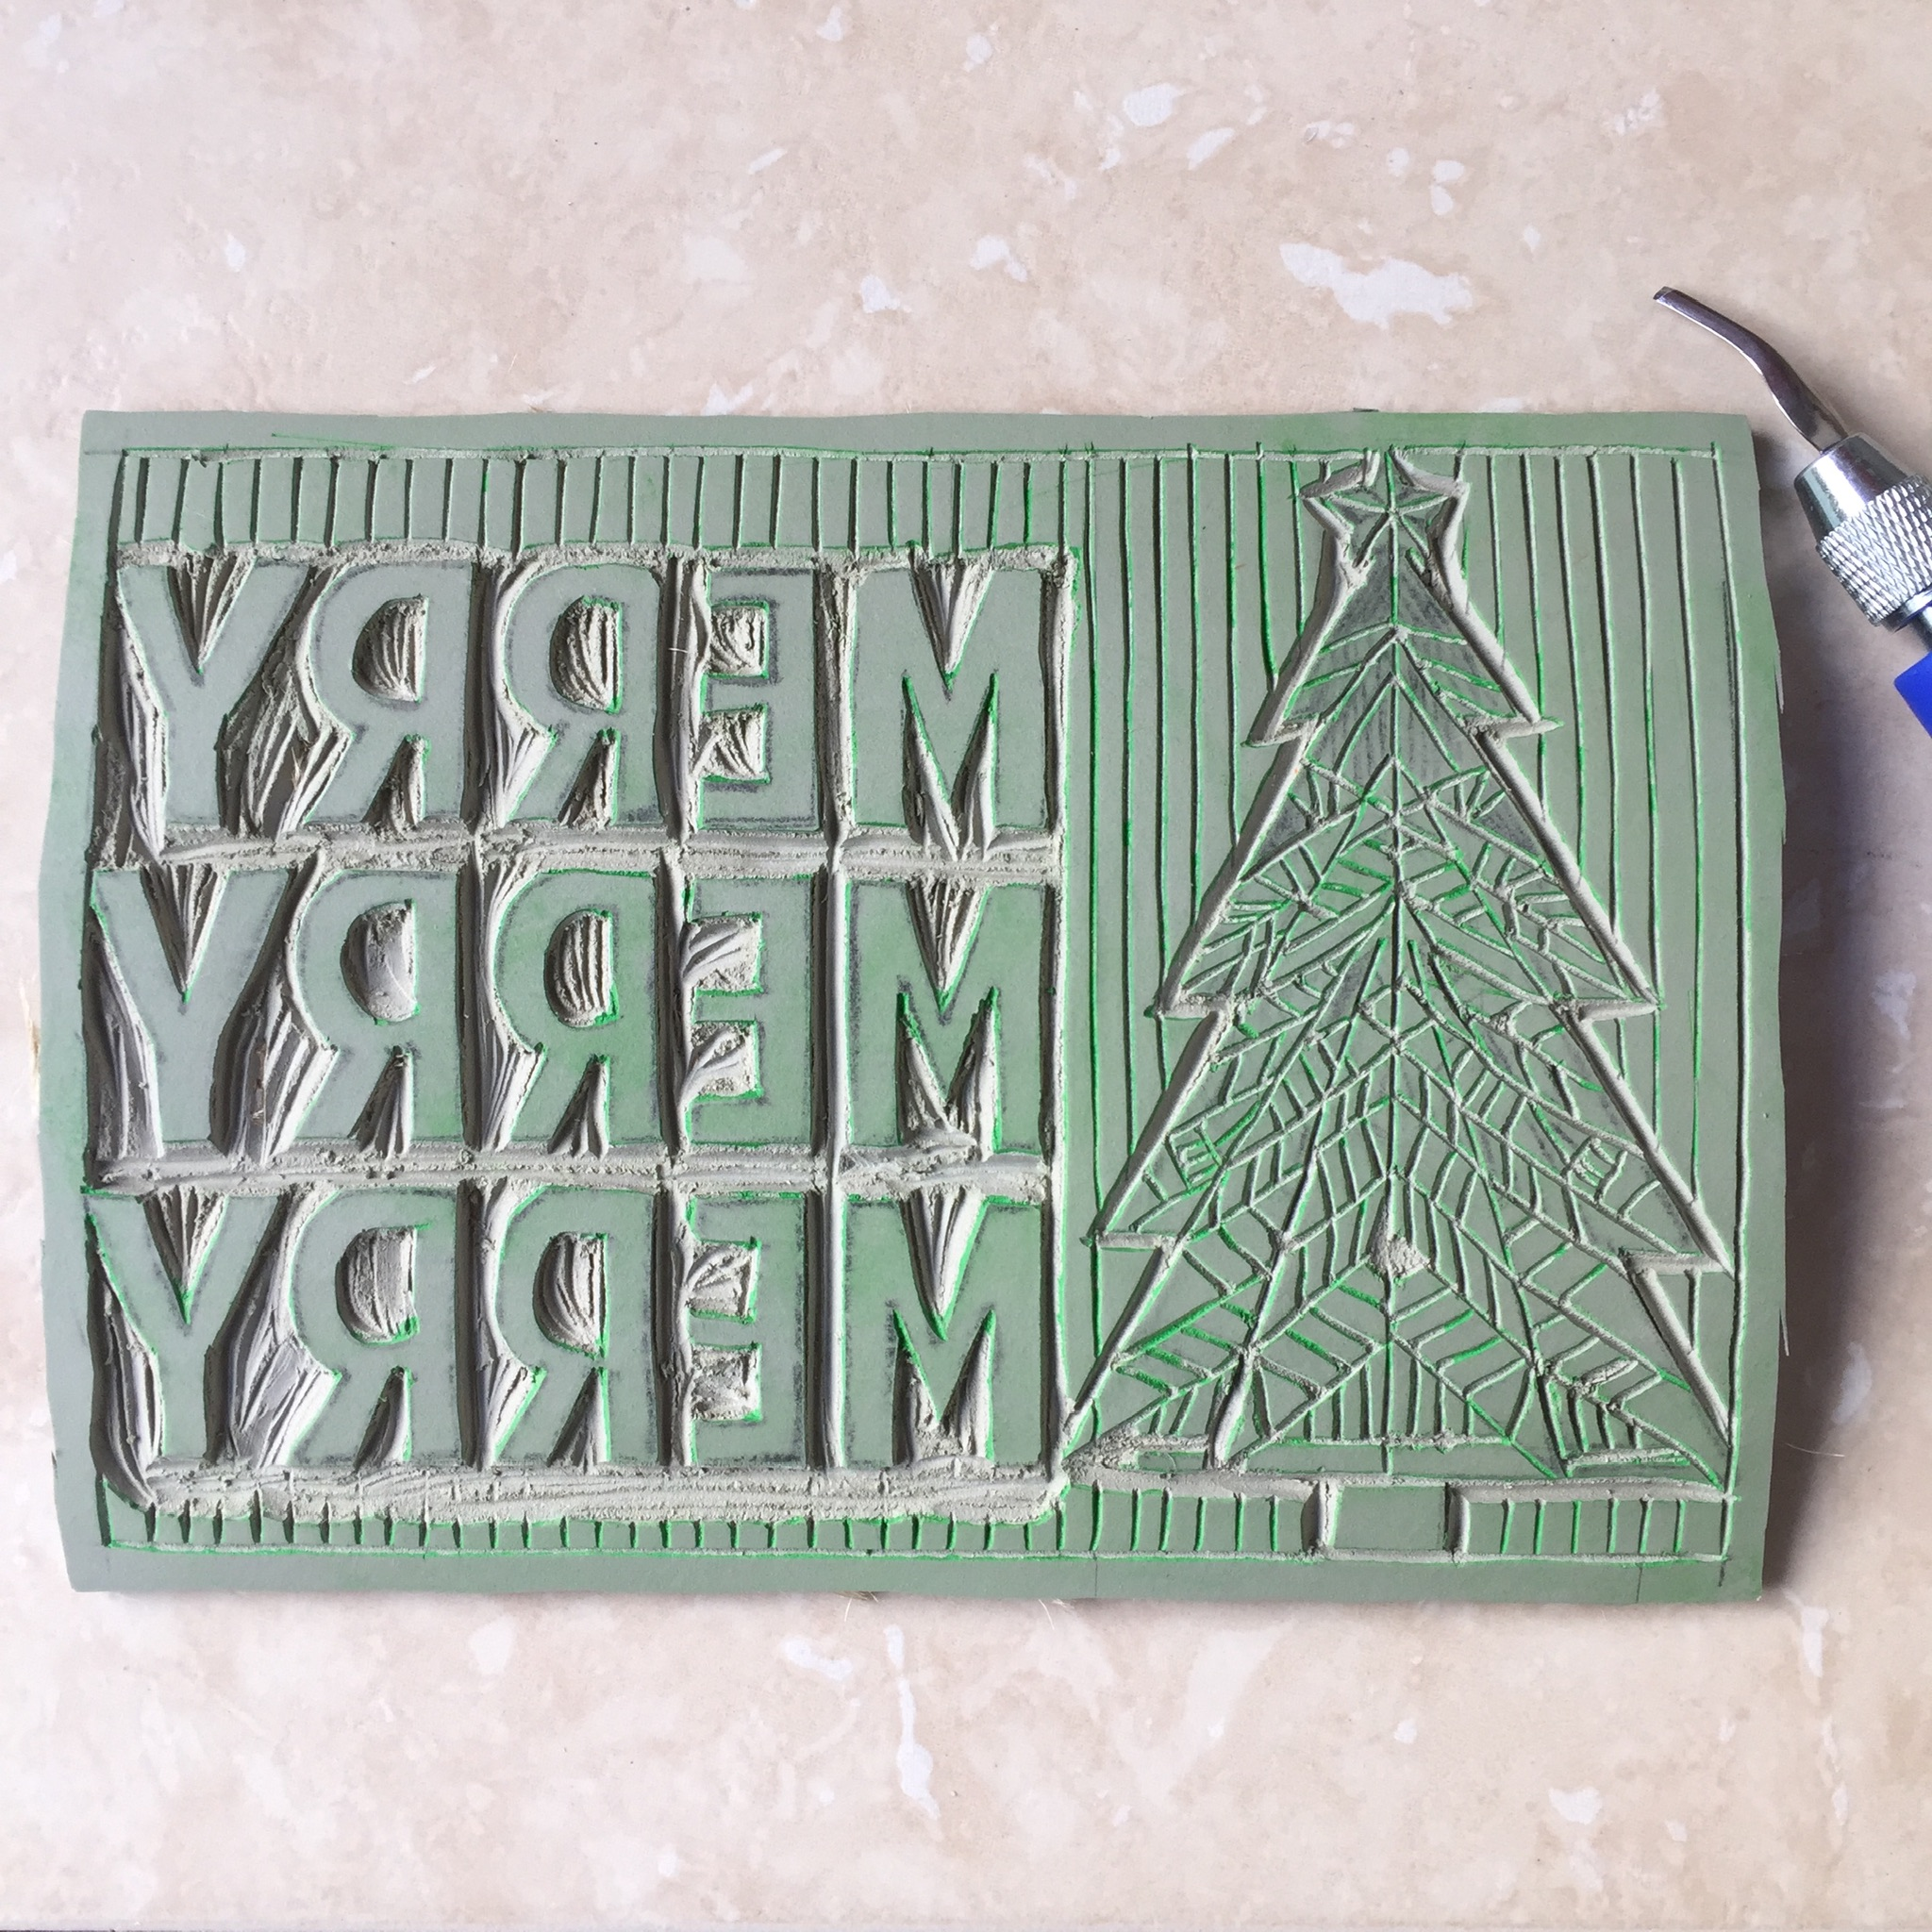 The hand carved linoleum plate.